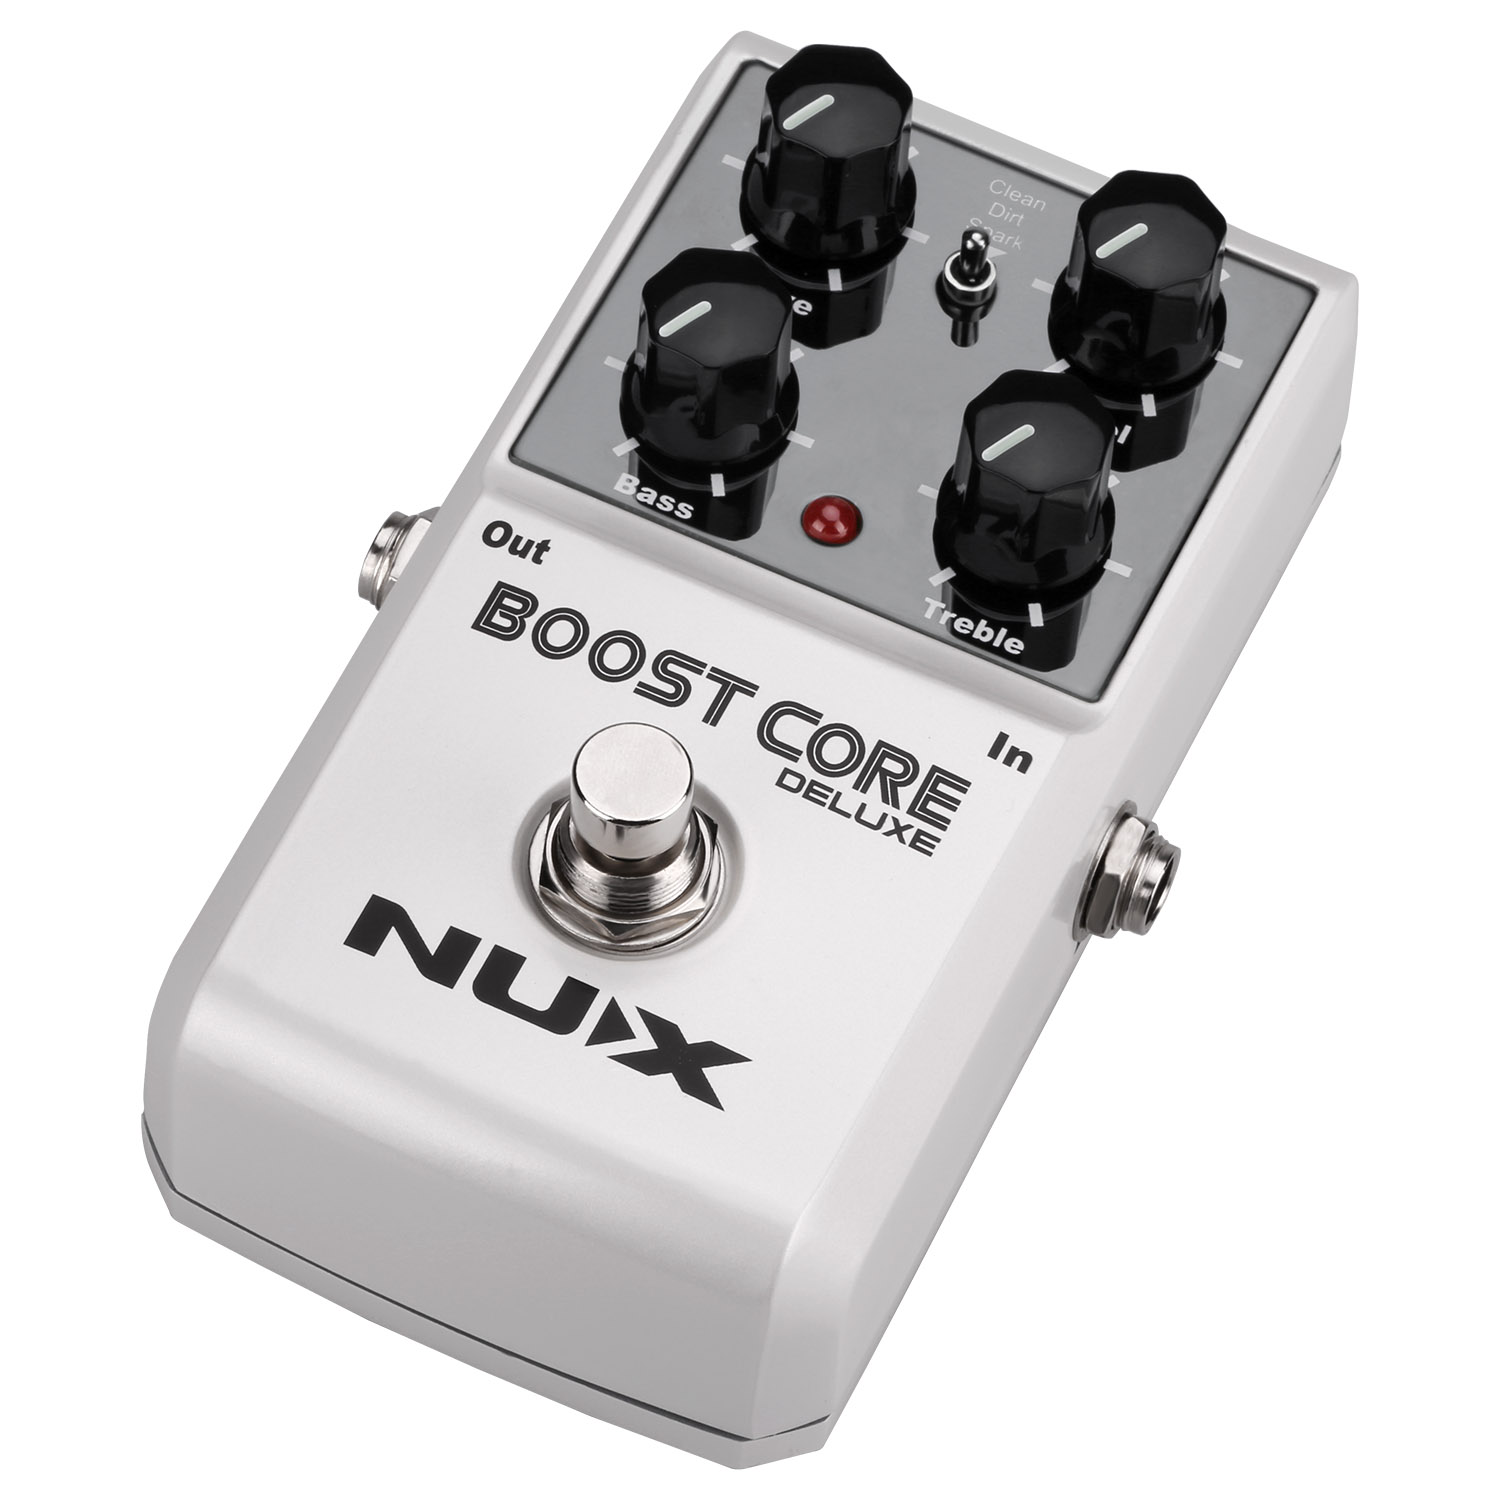 NUX Booster Core Deluxe Guitar Effects Pedal Guitarra Booster Stompbox Boost your tone True Bypass